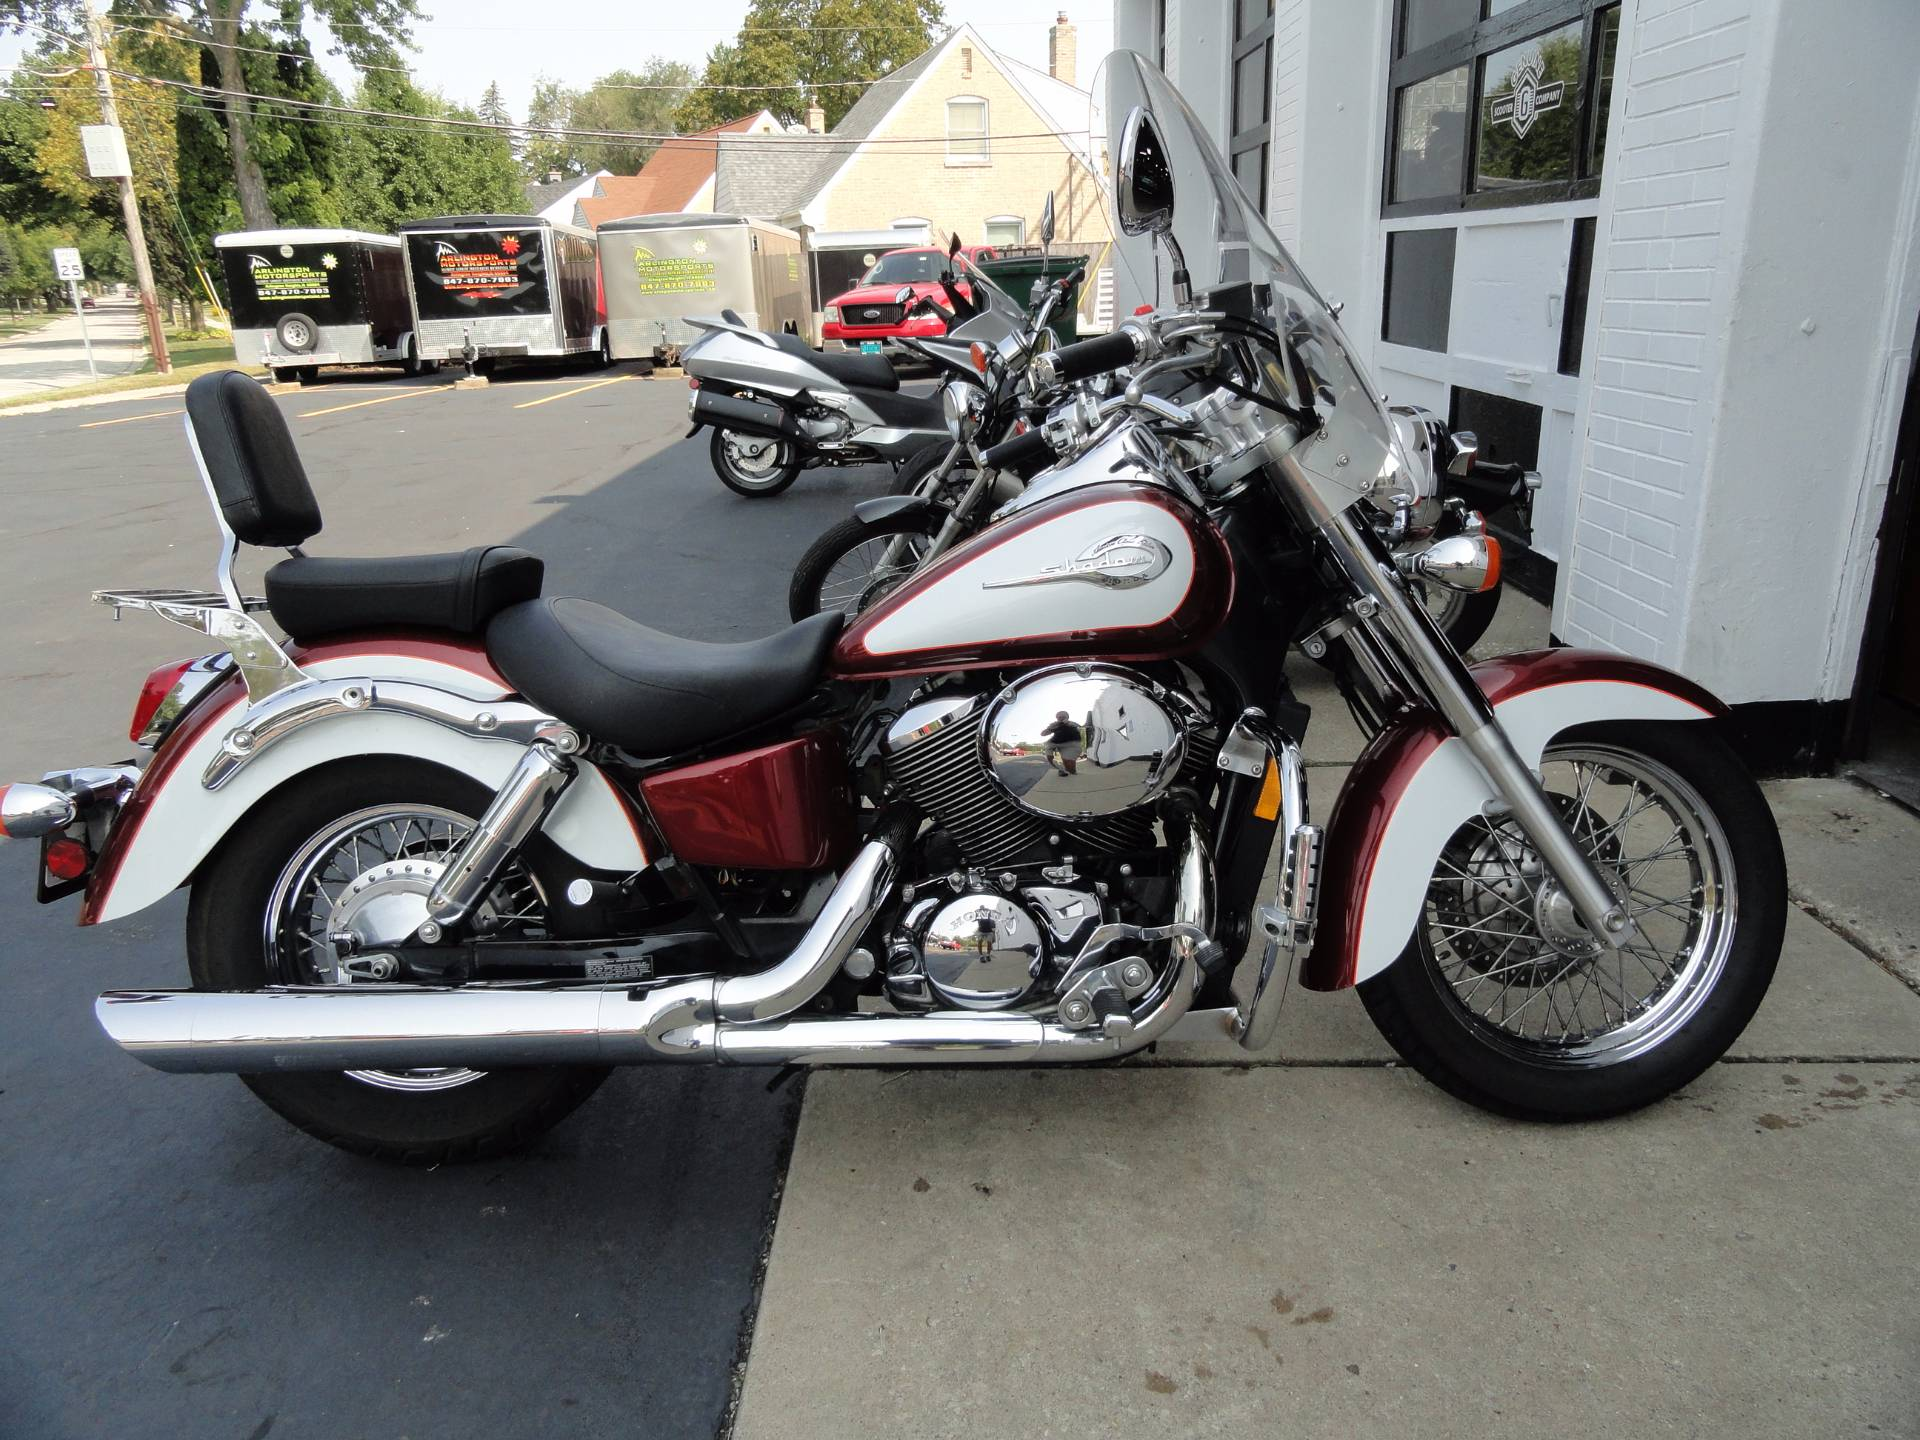 2001 Honda Shadow Ace 750 Deluxe in Arlington Heights, Illinois